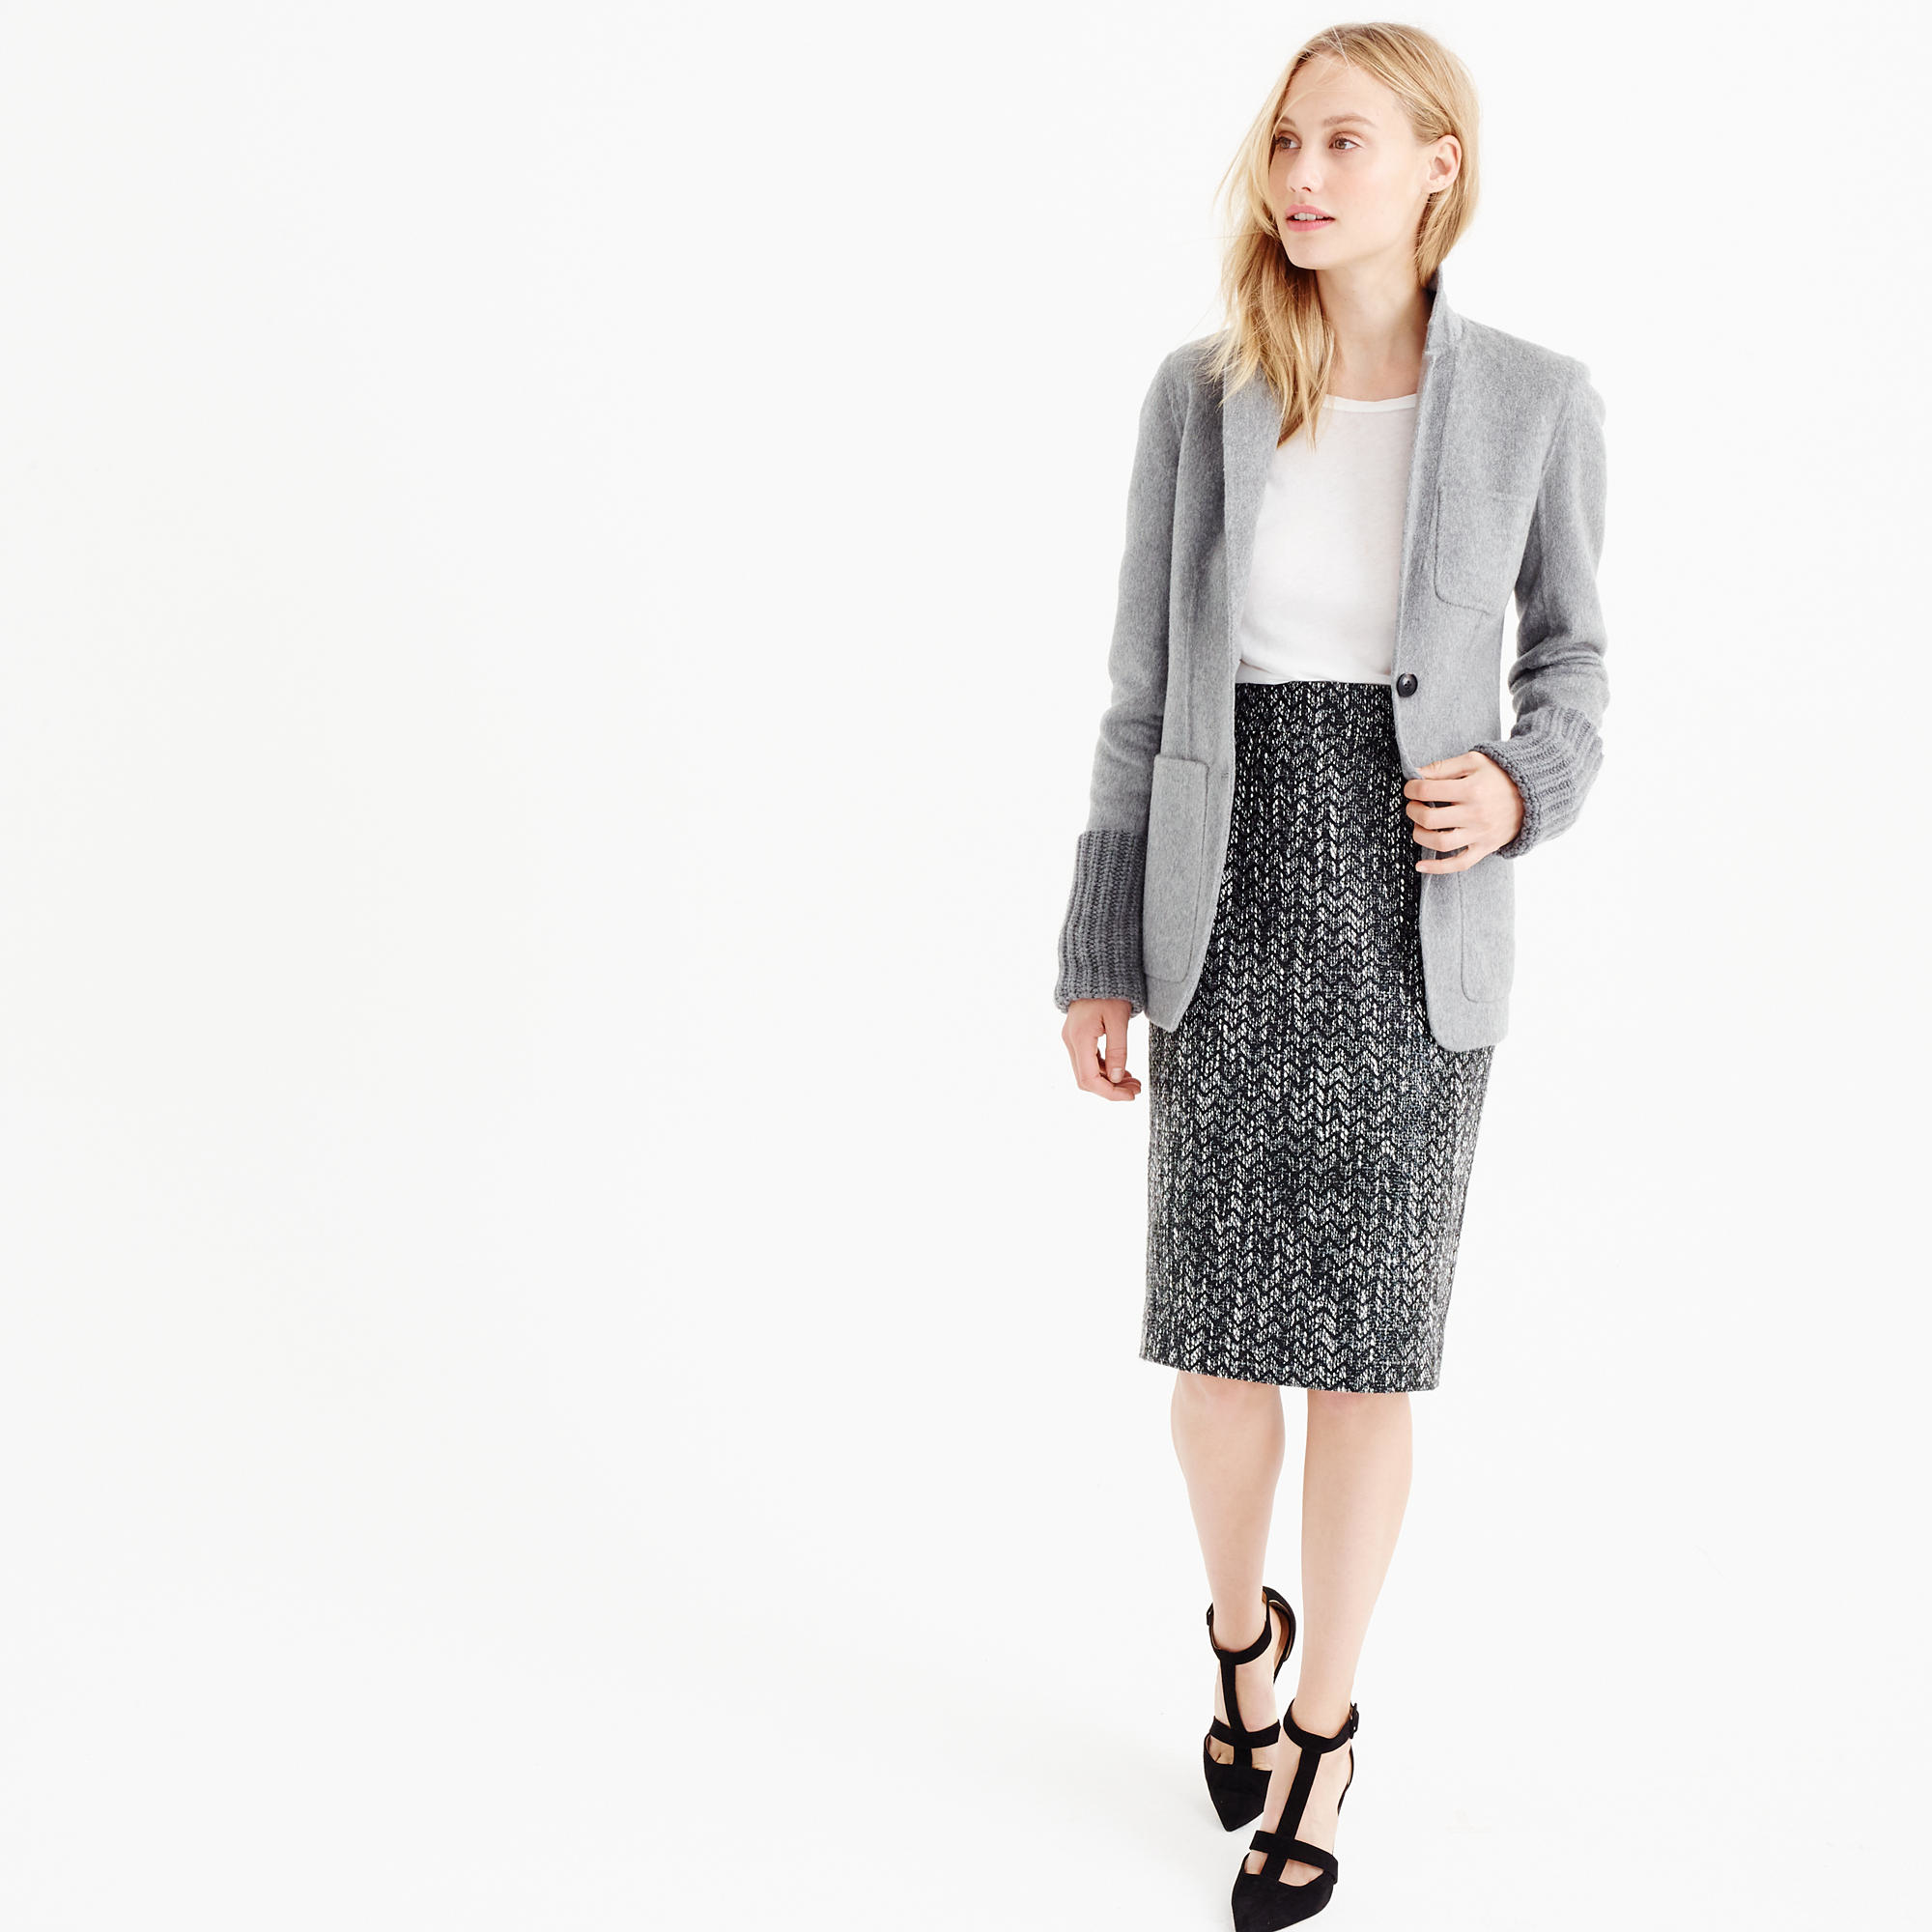 c6a2774df J.Crew Petite No. 2 Pencil Skirt In Holographic Tweed in Gray - Lyst